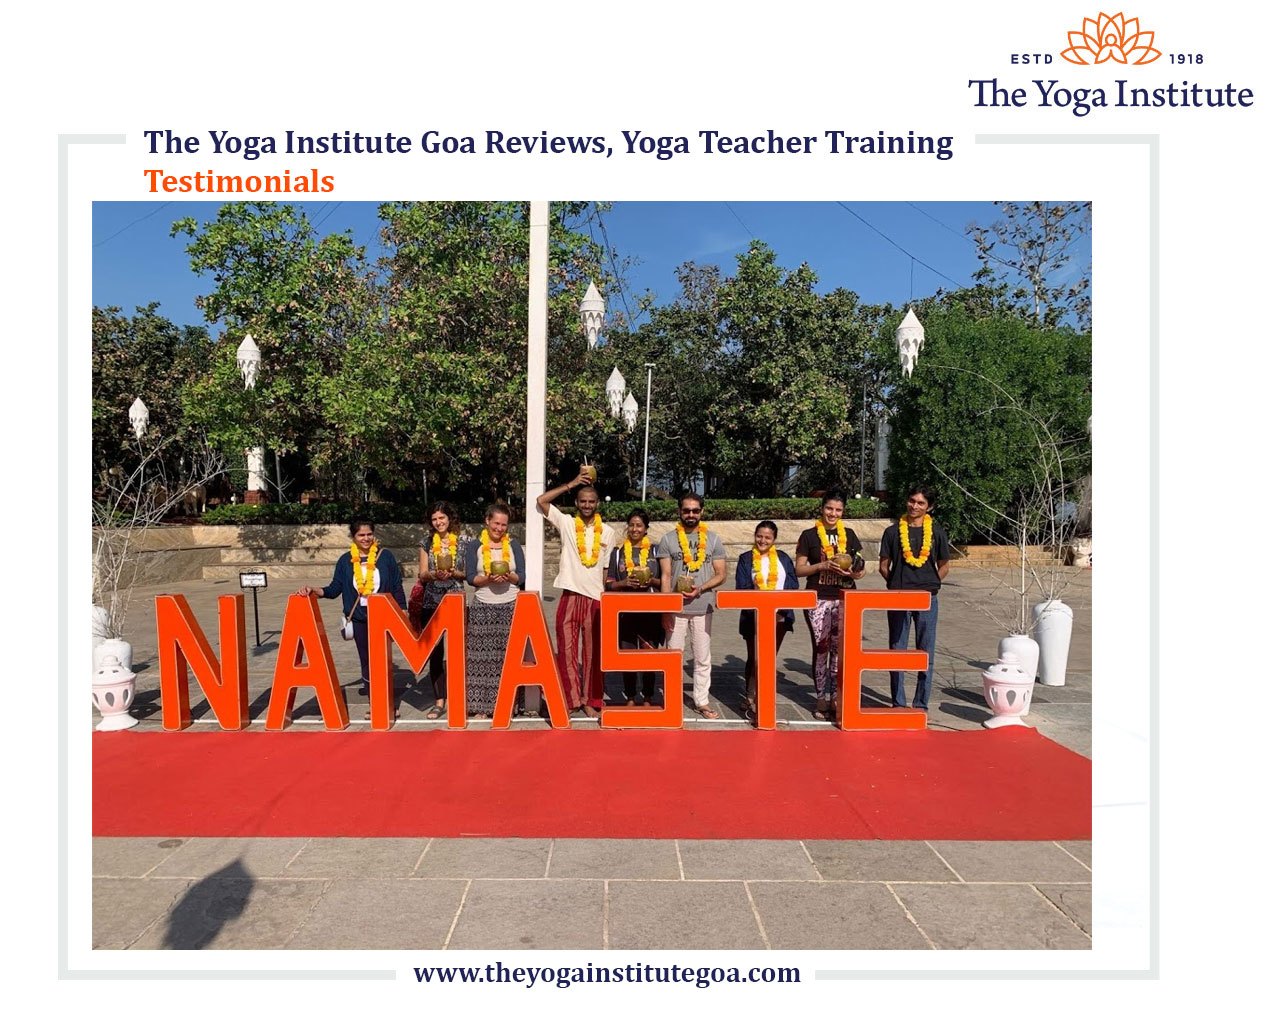 Yoga Teacher Training Testimonials